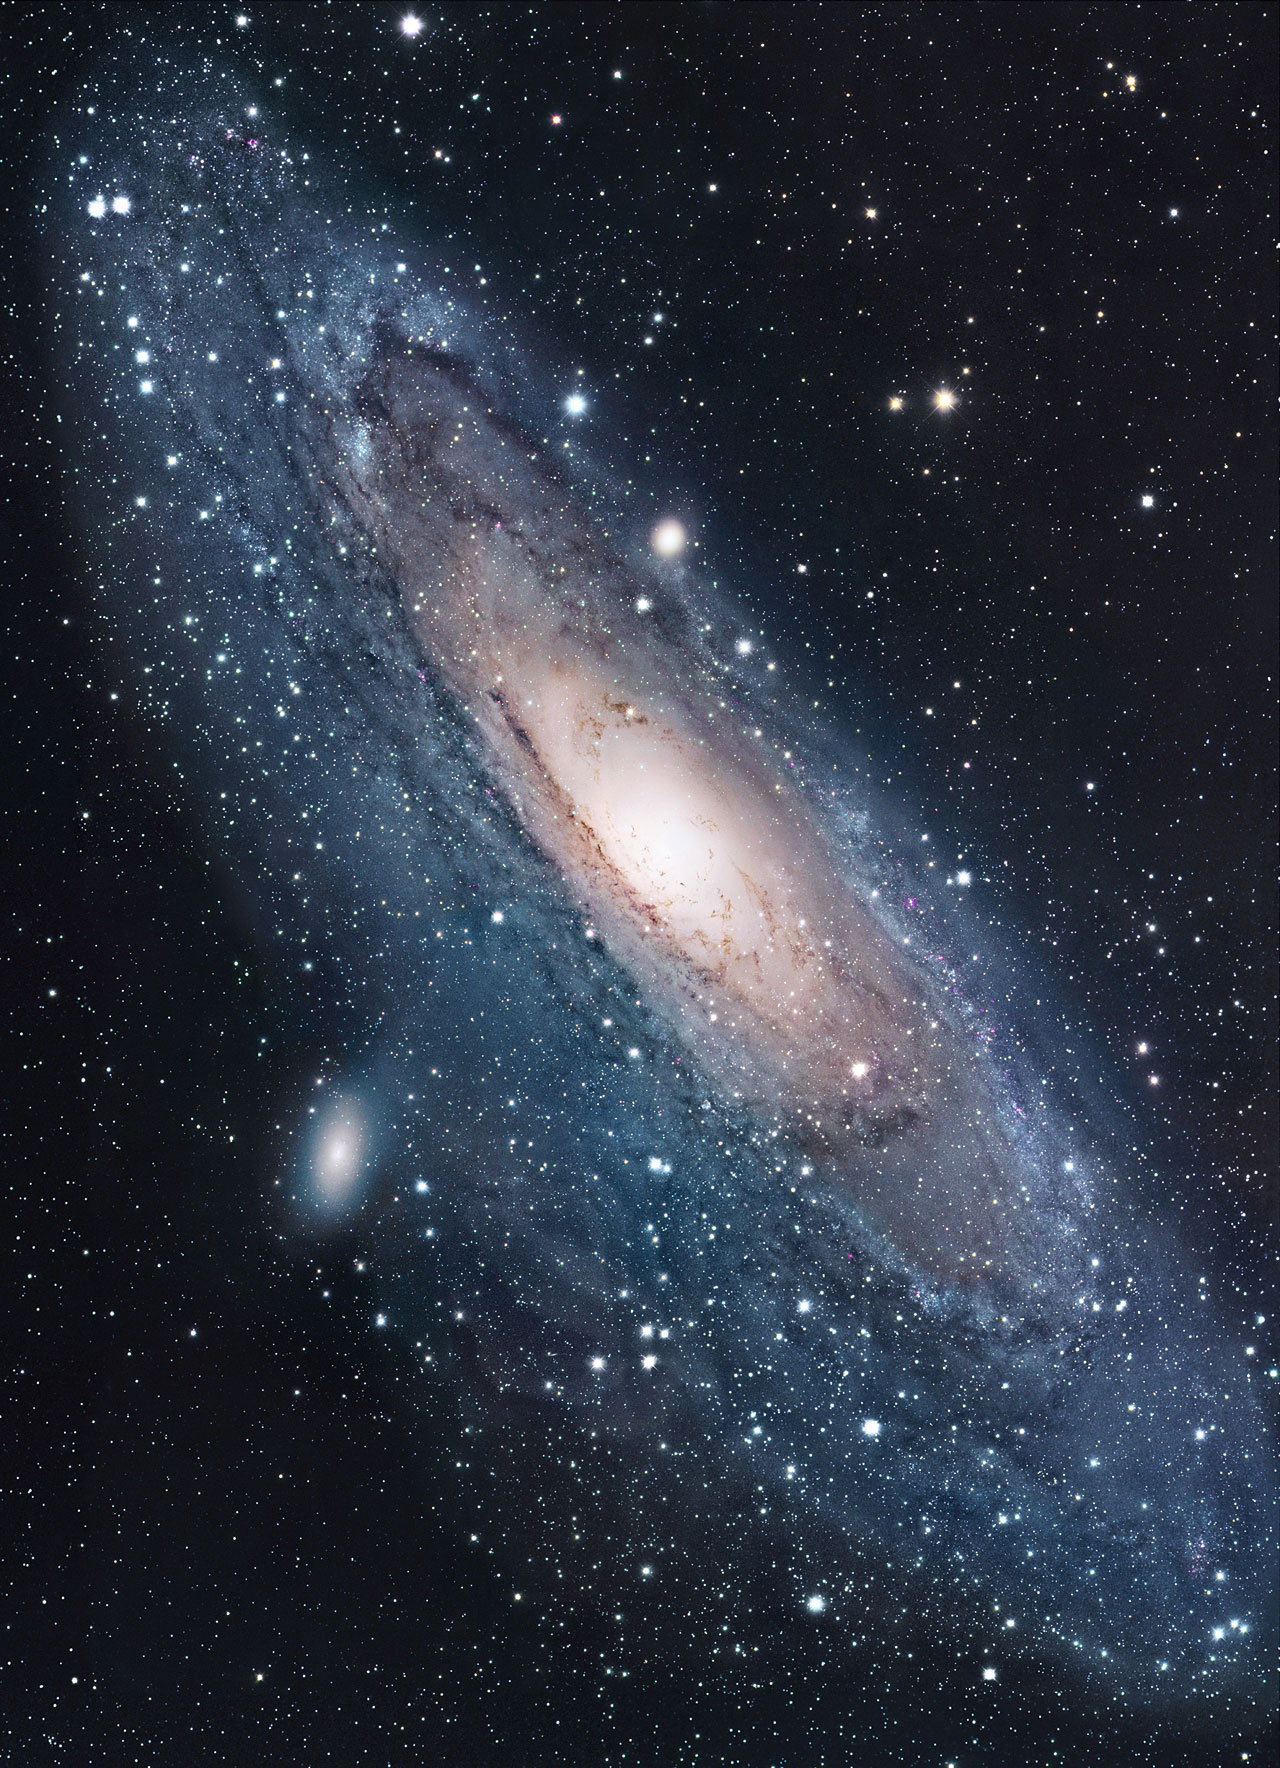 Andromeda Galaxy (M31) wide-field image